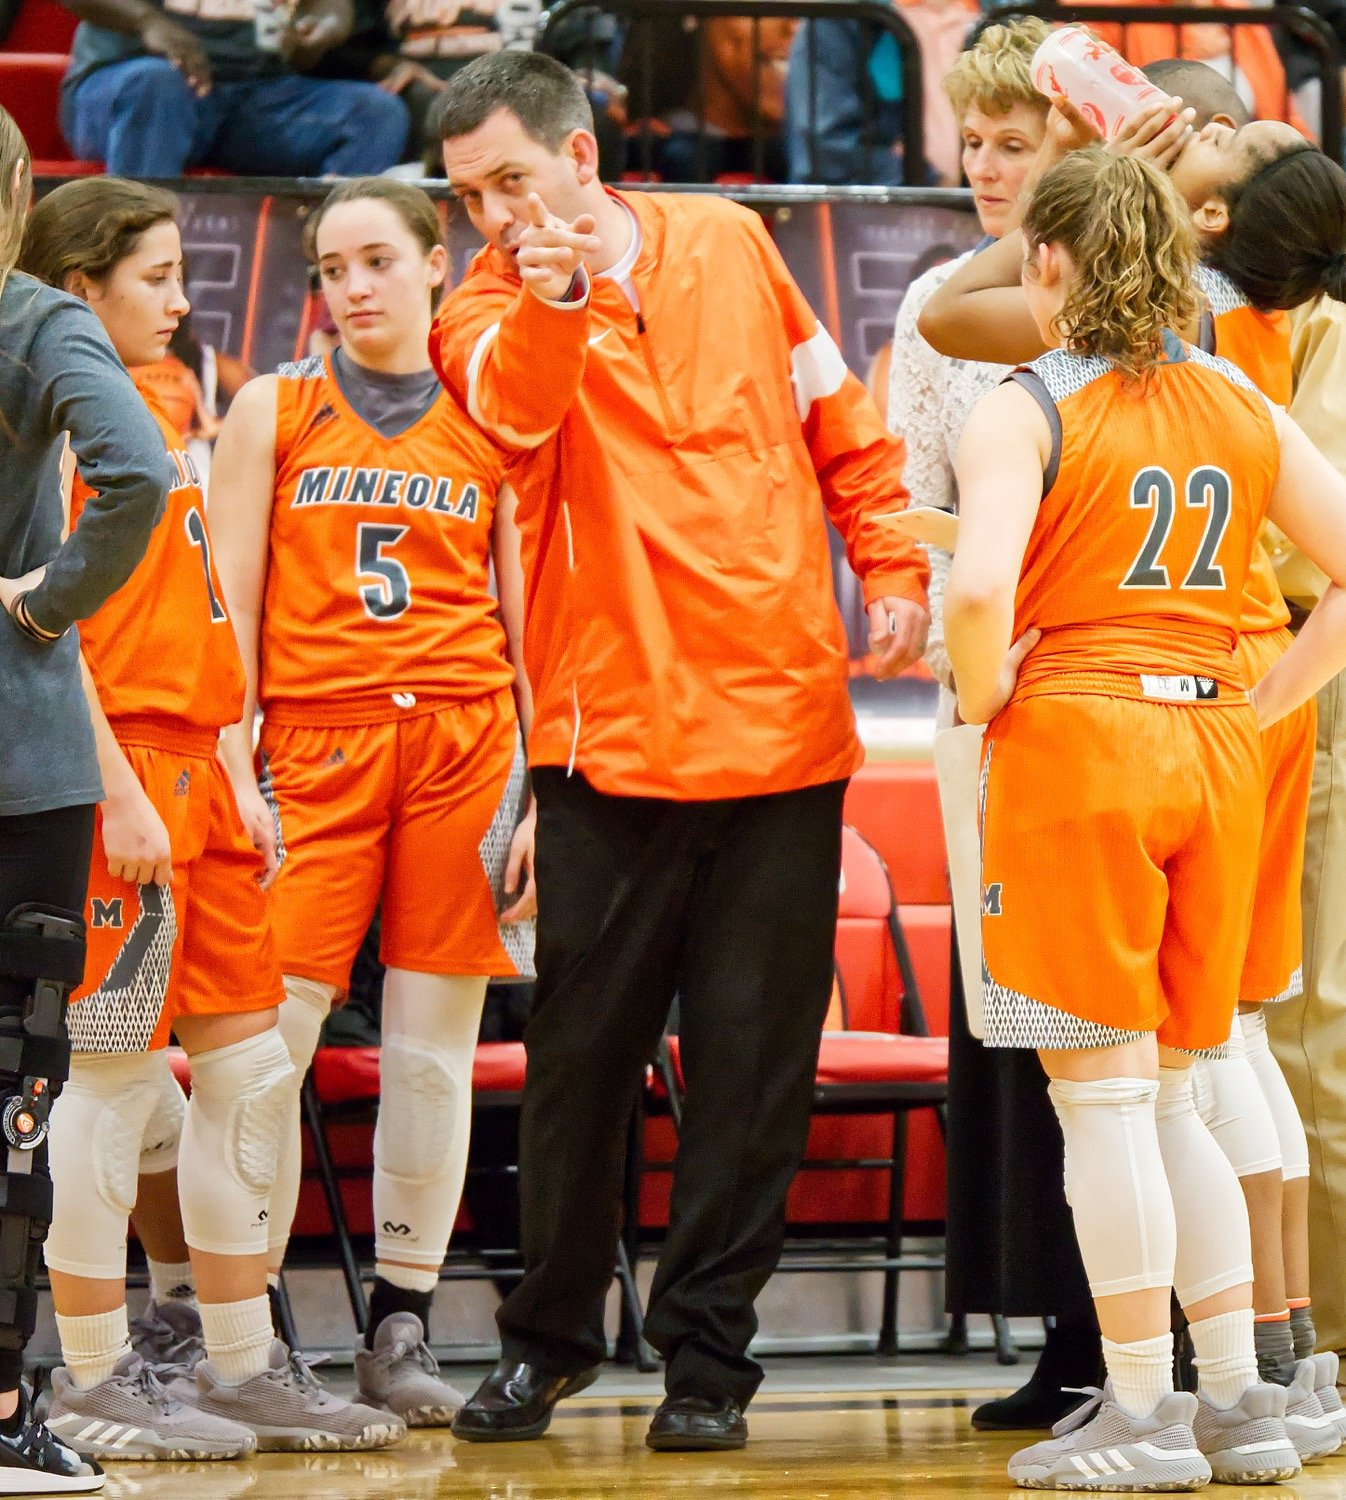 Coach Brad Gibson makes a point to the huddled Ladyjackets during a timeout.